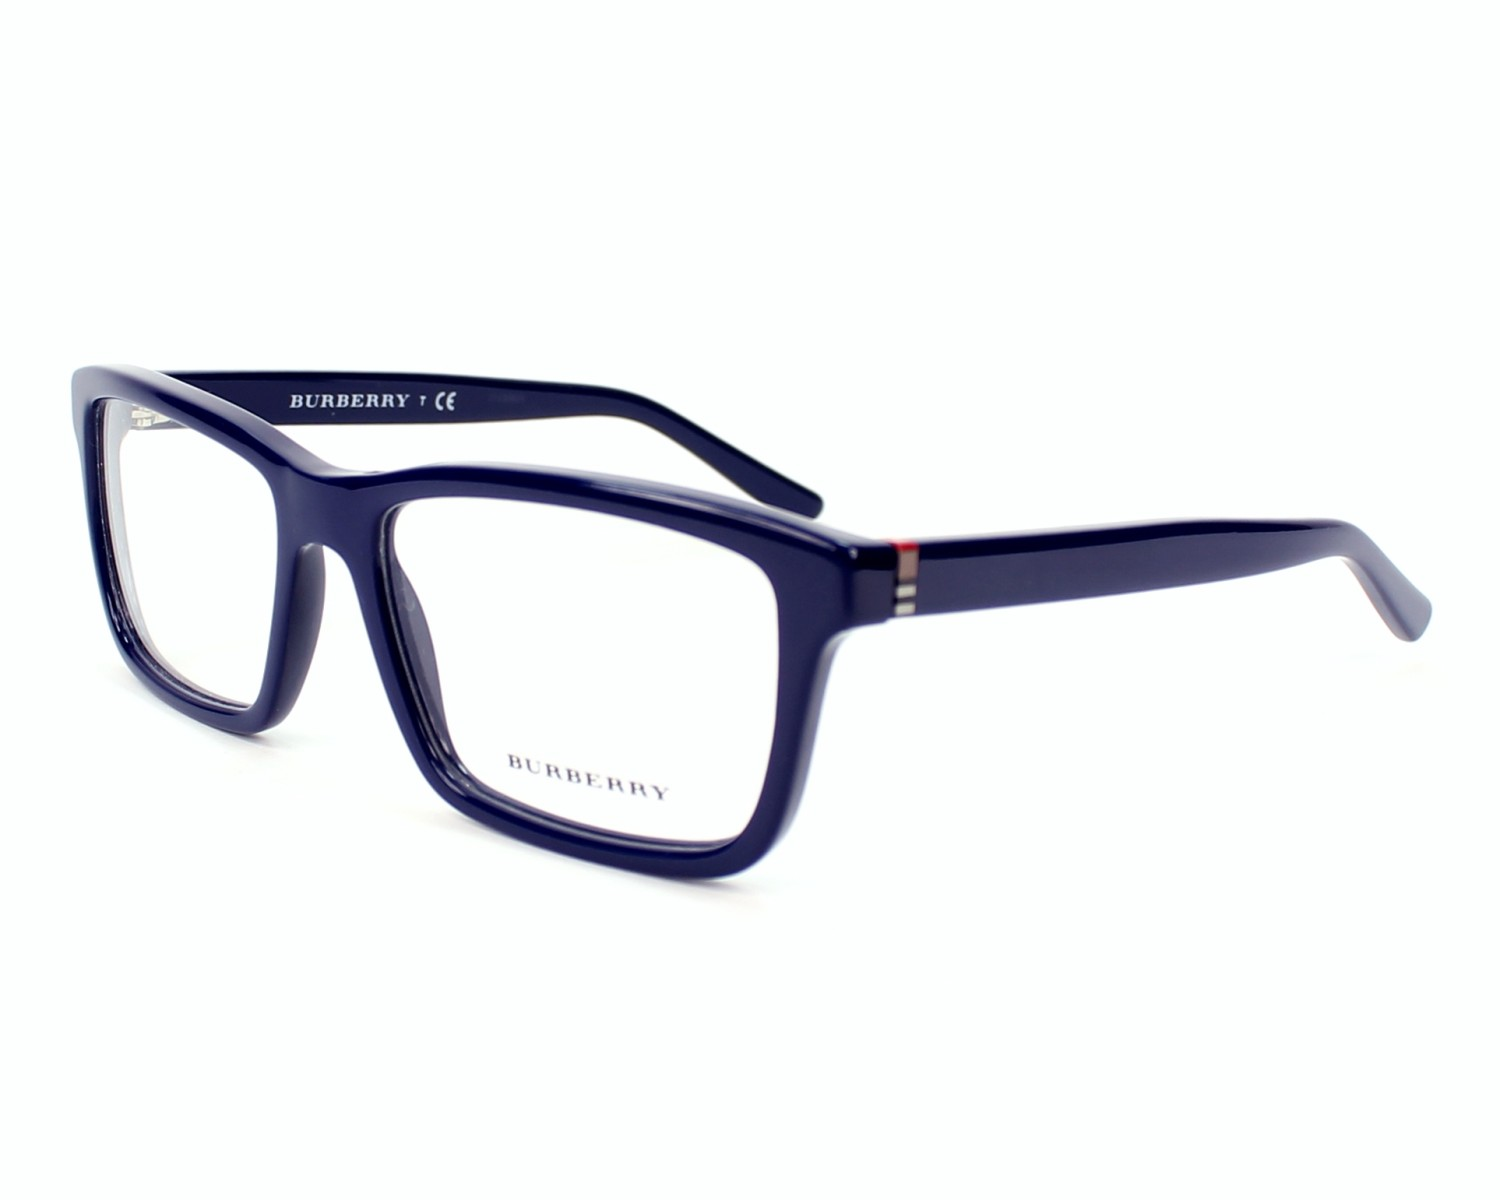 burberry blue sunglasses vrus  Burberry has been added to your cart